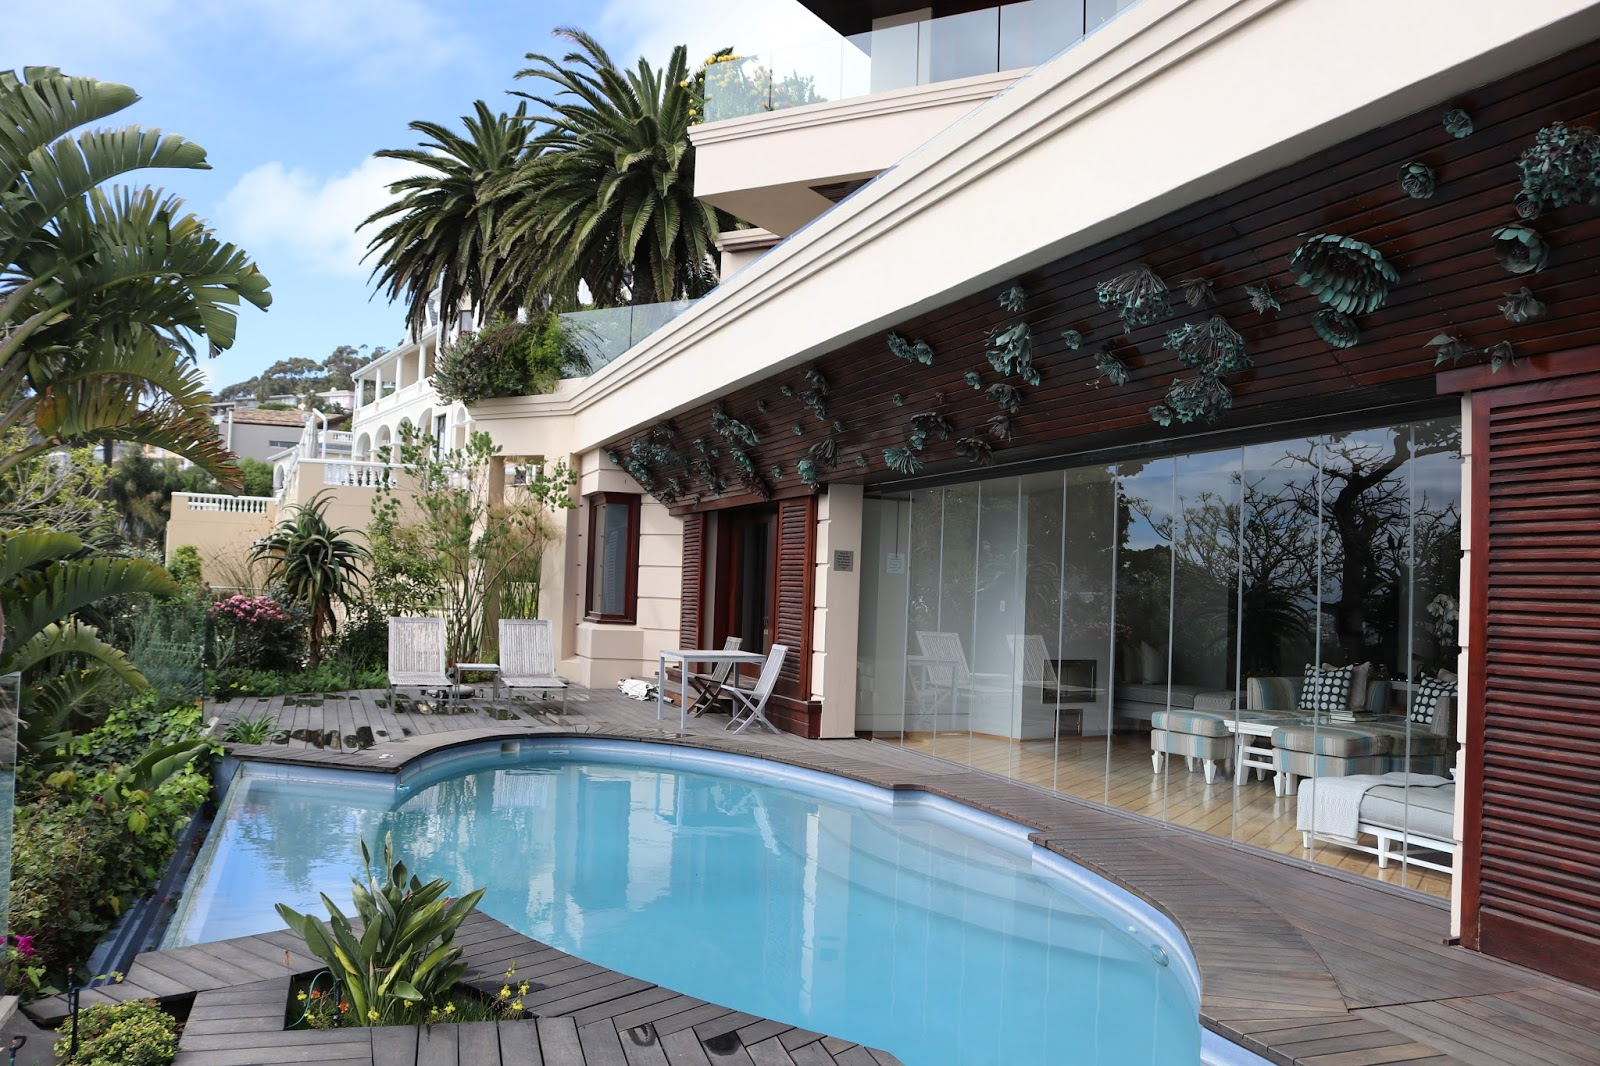 Ellerman House, Camps Bay, Cape Town, South Africa